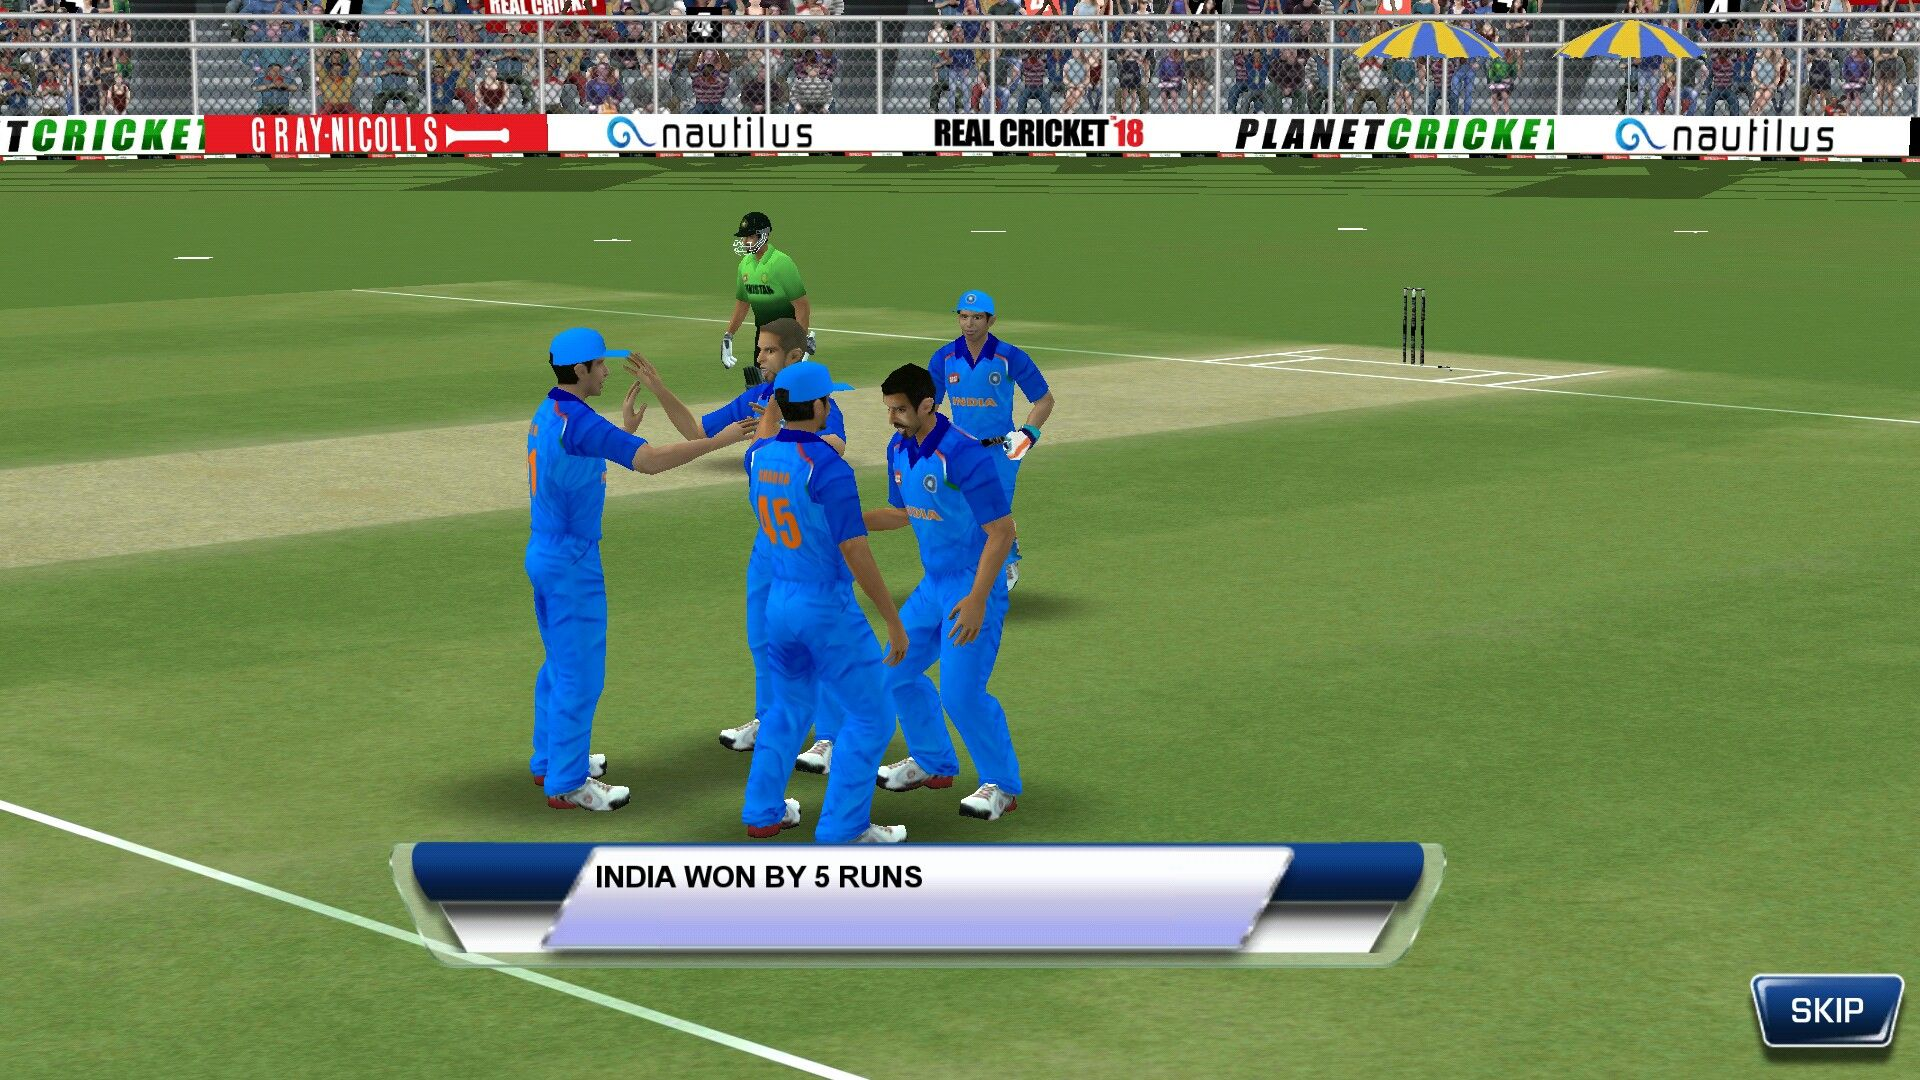 Real Cricket 18 offline cricket game for iPhone